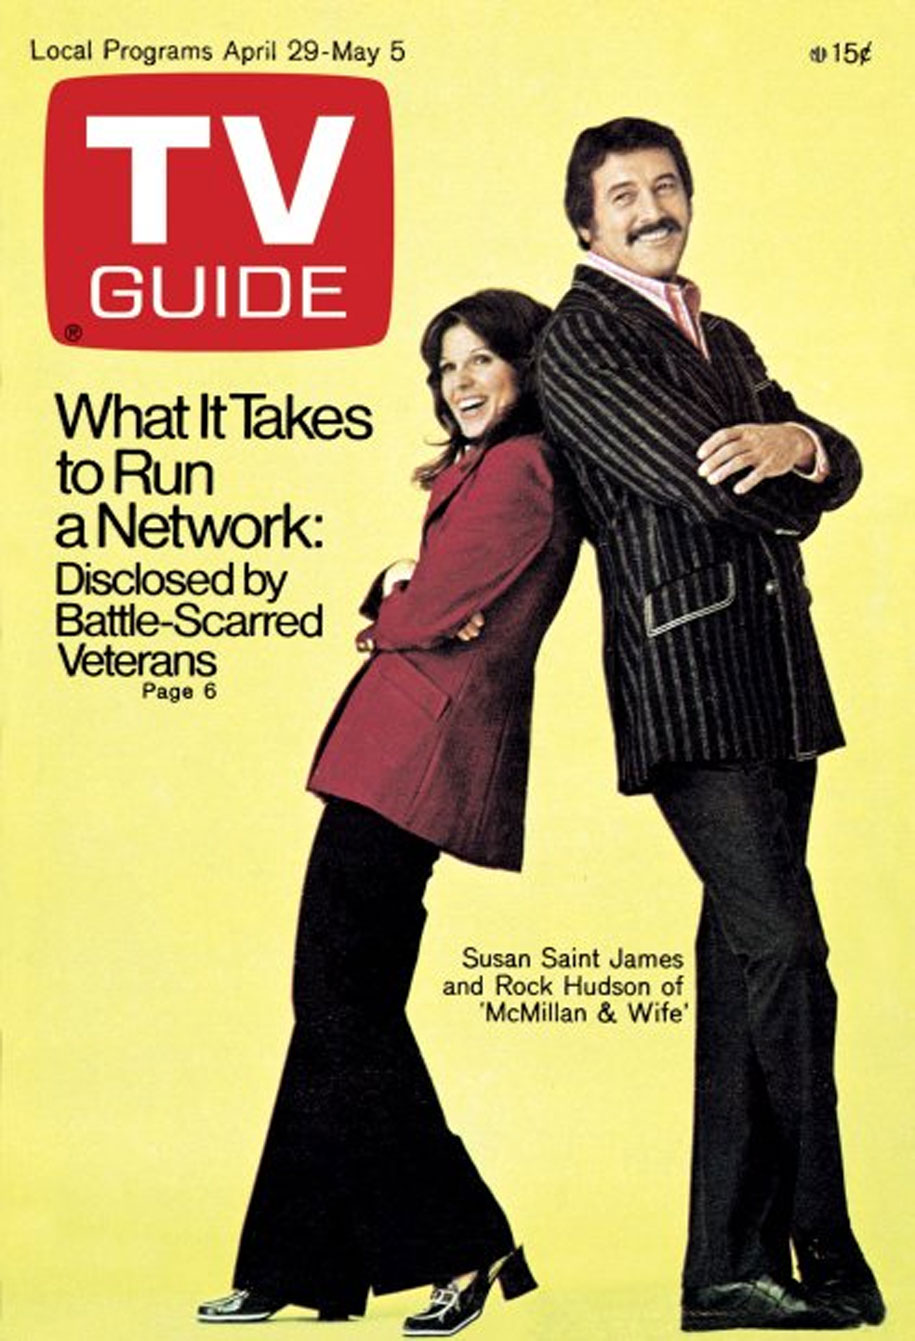 TV Guide April 29 1972 Montreal-St Lawrence Edition Front Cover